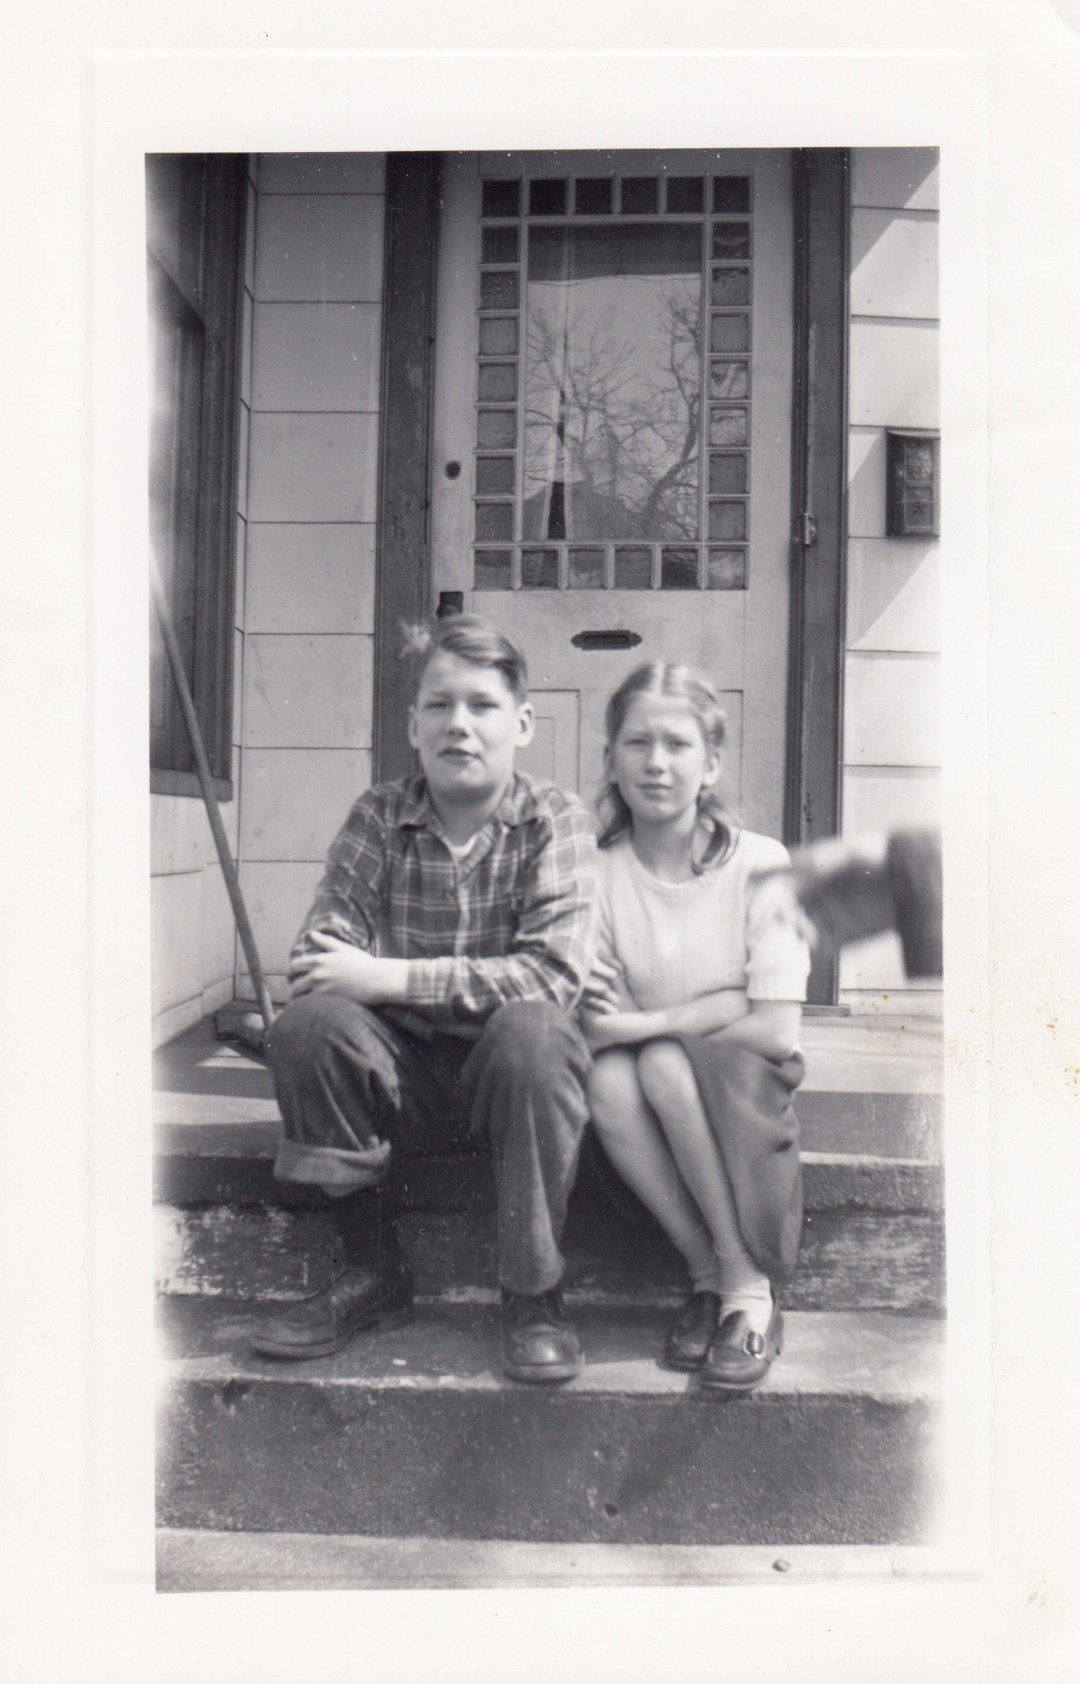 My mother and her brother